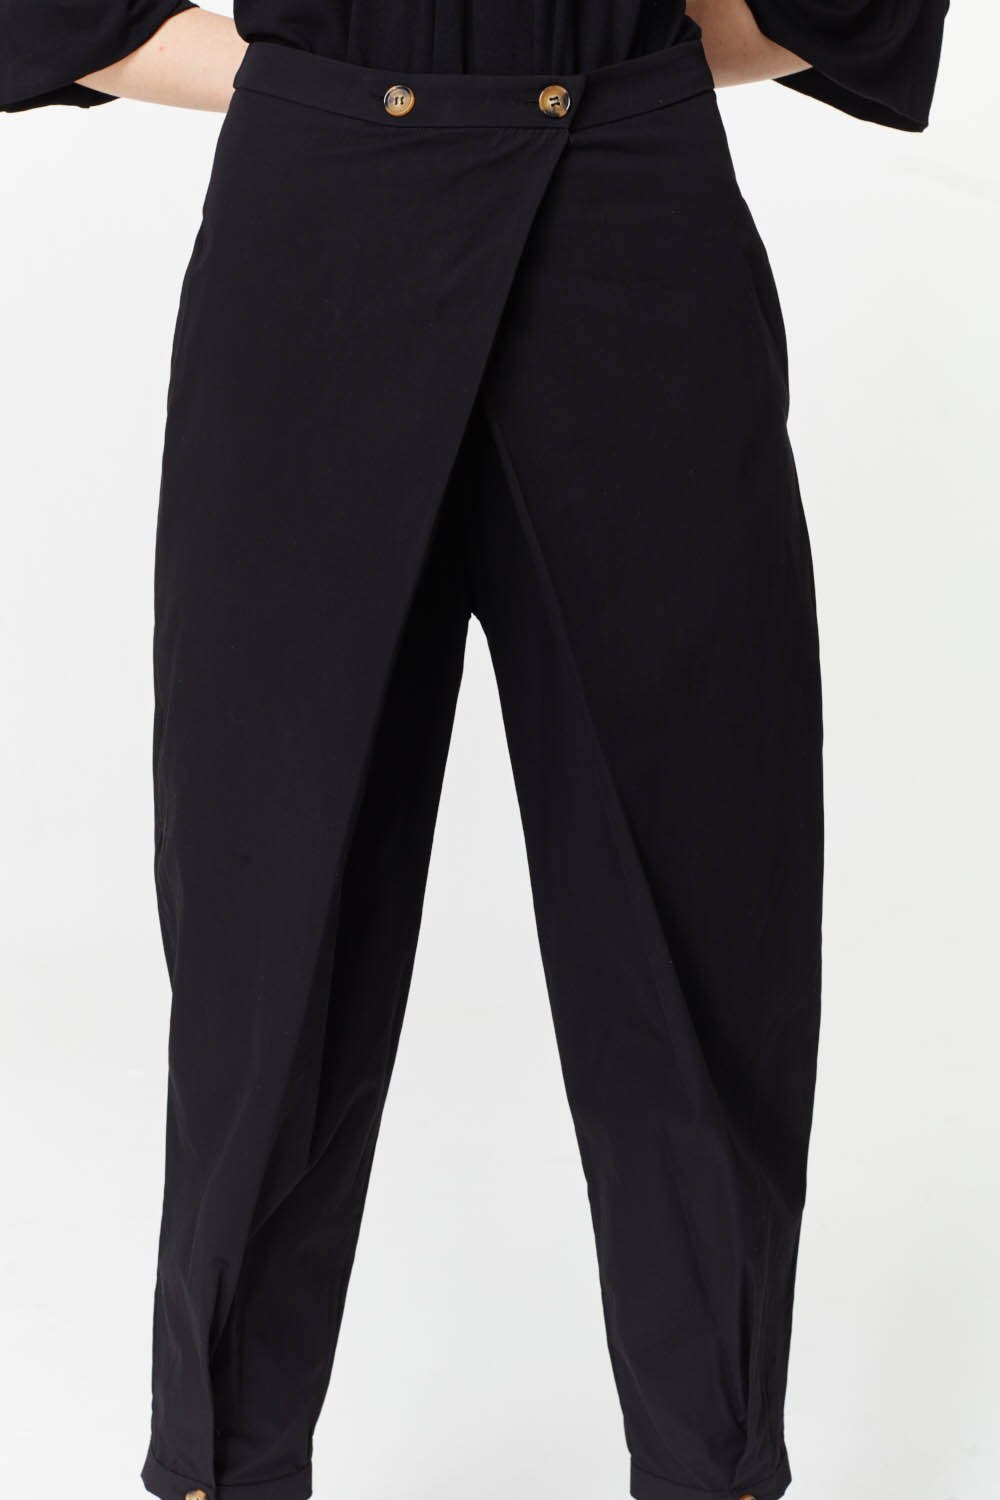 MIZALLE Asymmetric Detailed Trousers (Black) (1)